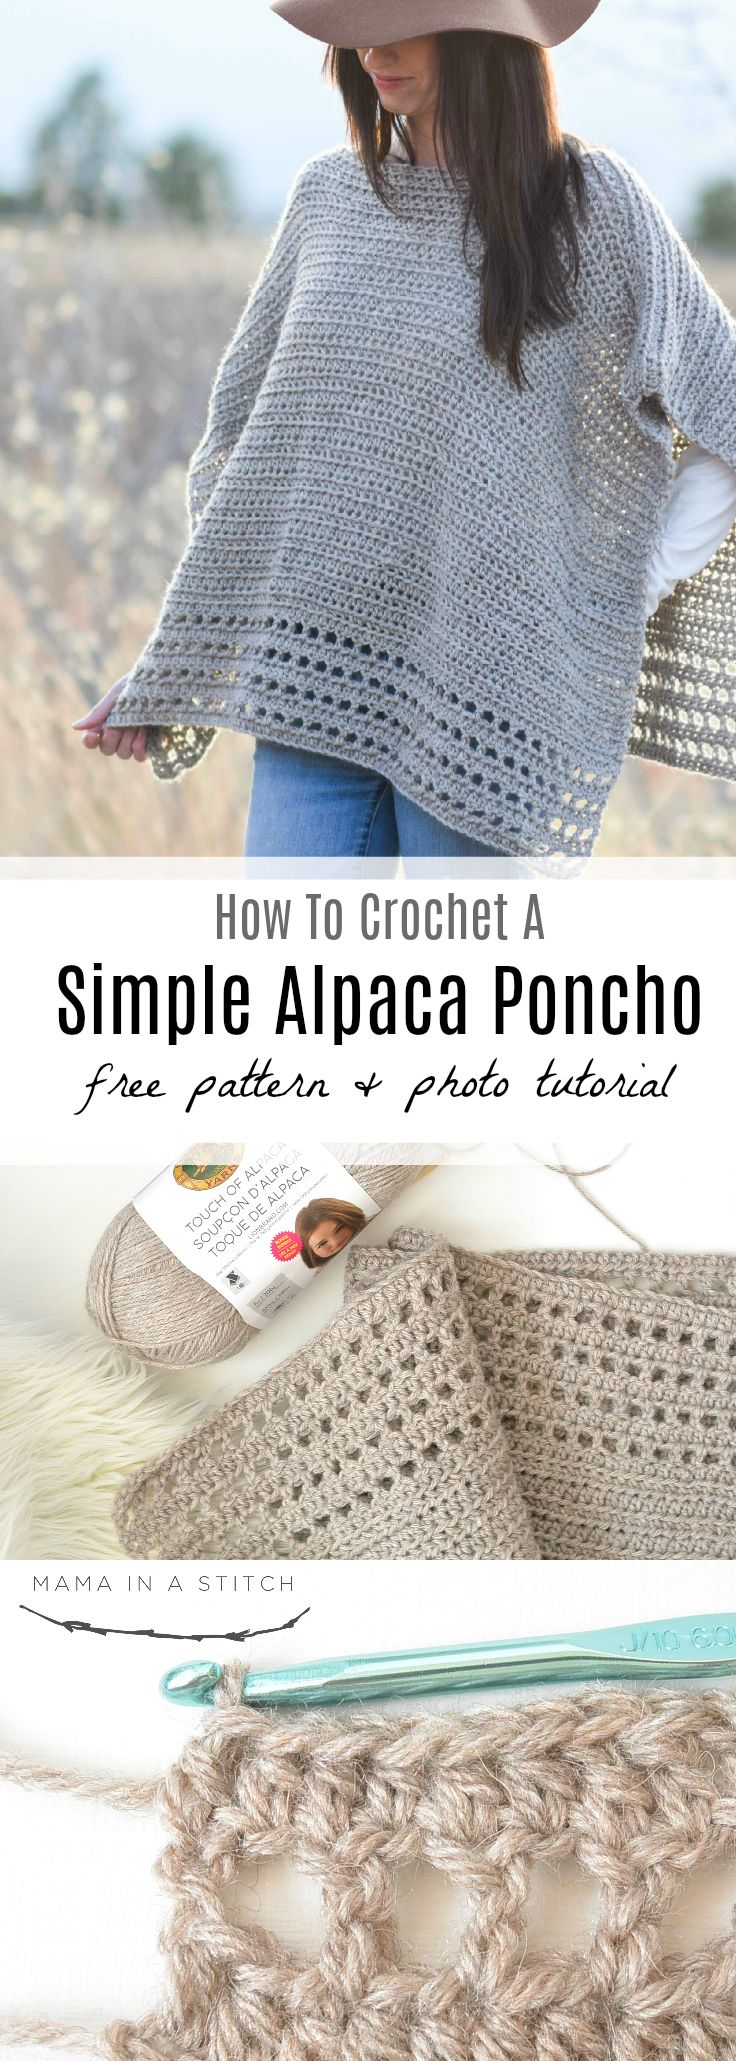 Light Alpaca Poncho Crochet Pattern | Things to do with yarn ...